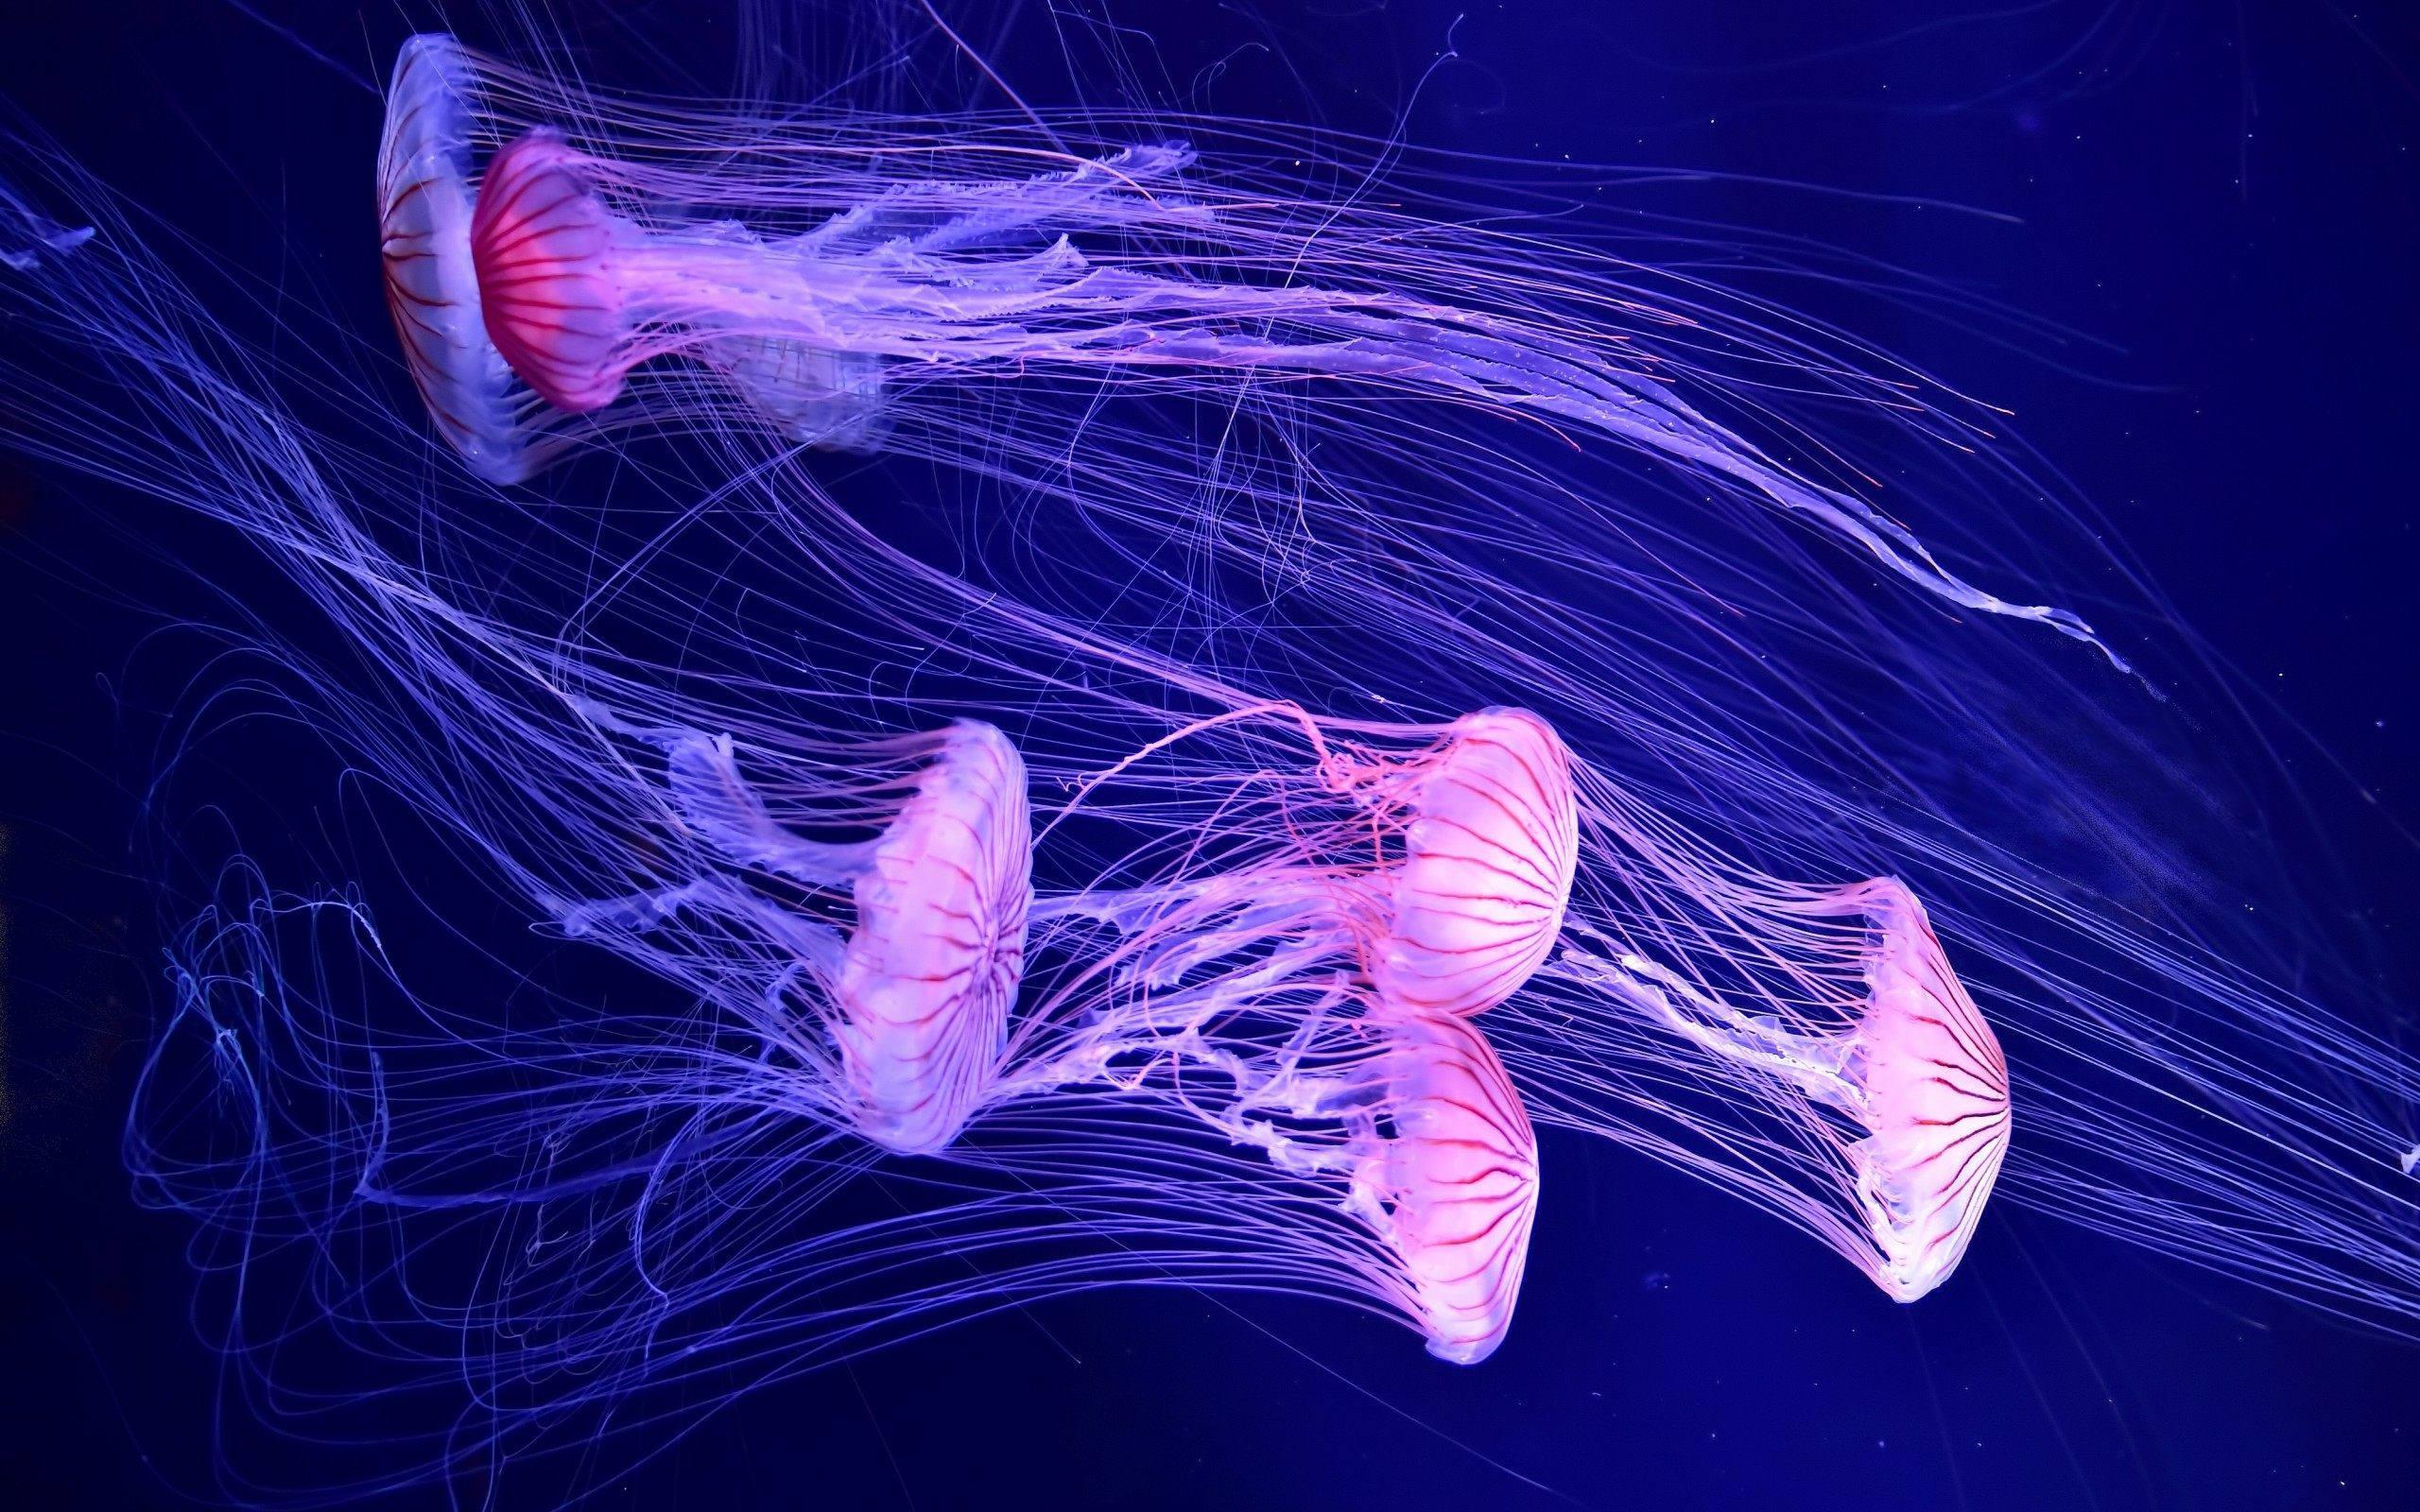 4k jellyfish wallpapers high quality download free - Jellyfish hd images ...